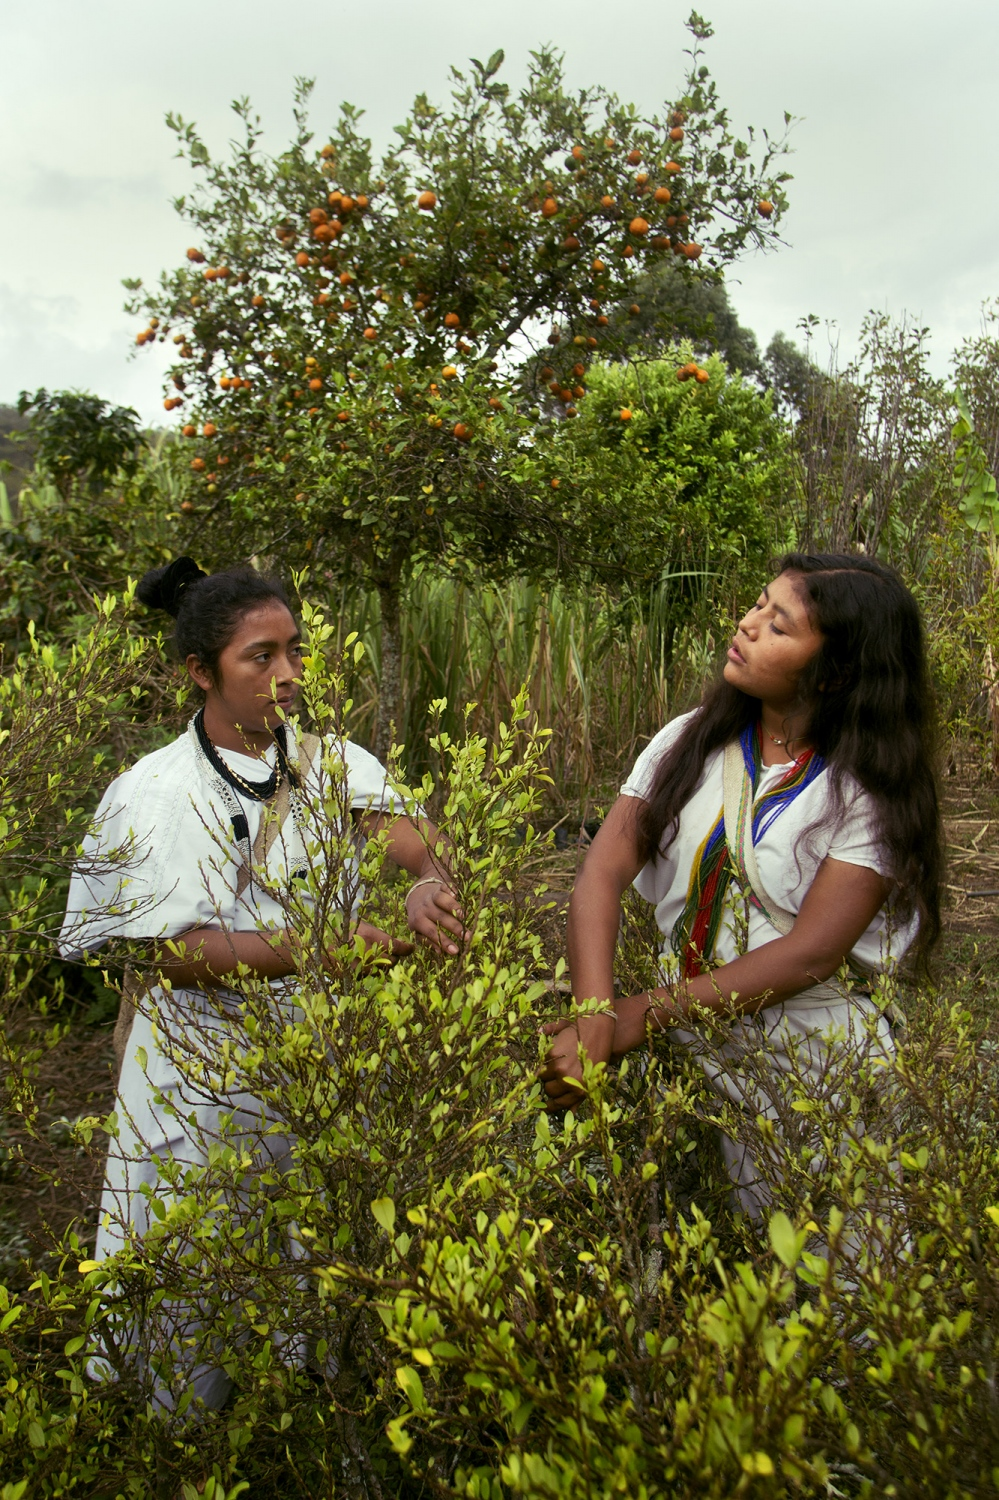 Daniela Villafaña and his cousin of the Arhuaca ethnic group, collect coca leaf for the daily ceremonies that this population has. The coca leaf is fundamental for the cultural development of the peoples of the Sierra Nevada of Colombia, as well as for other peoples throughout Colombia and South America. It is not considered a drug but a sacred plant and in that sense the natives profess a deep respect. Nabusimake, Cesar, Colombia.